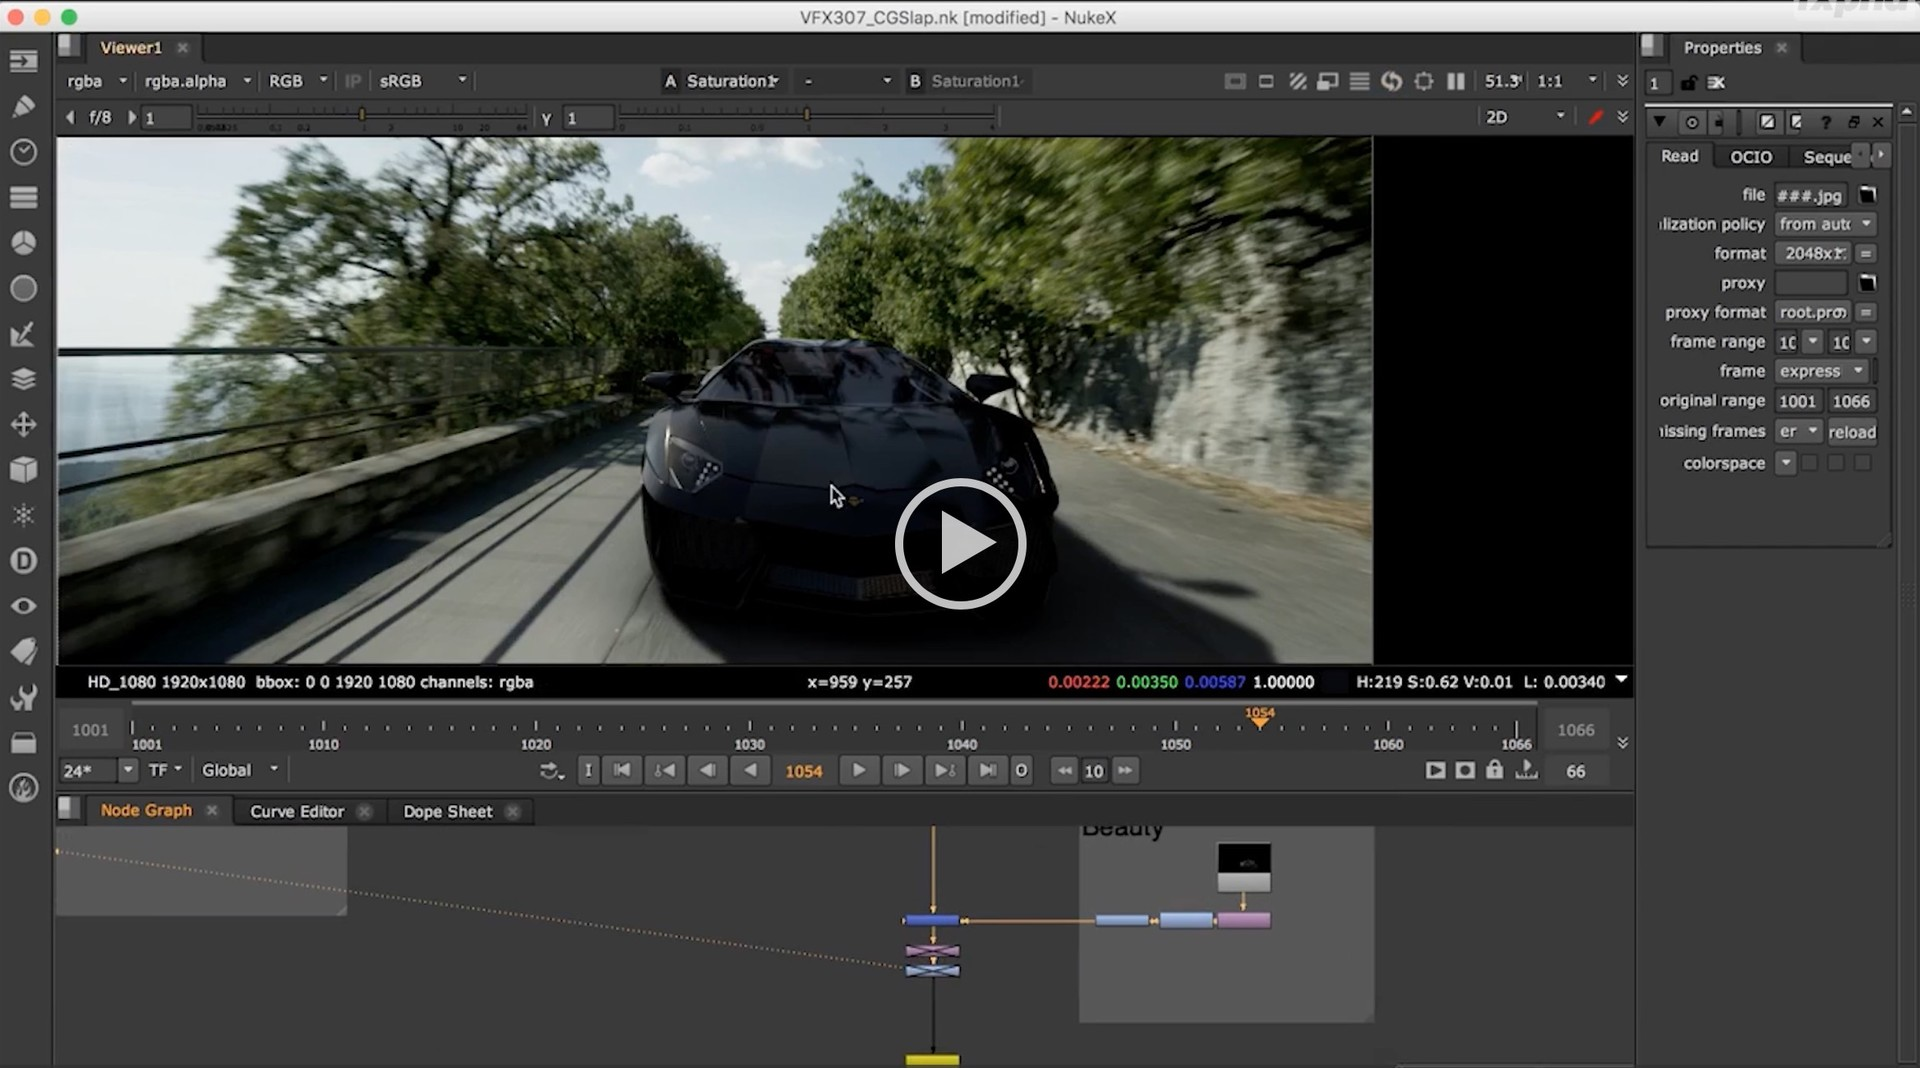 Charles Chorein - FXPHD - VFX203 - Lambourghini Lighting & Lookdev